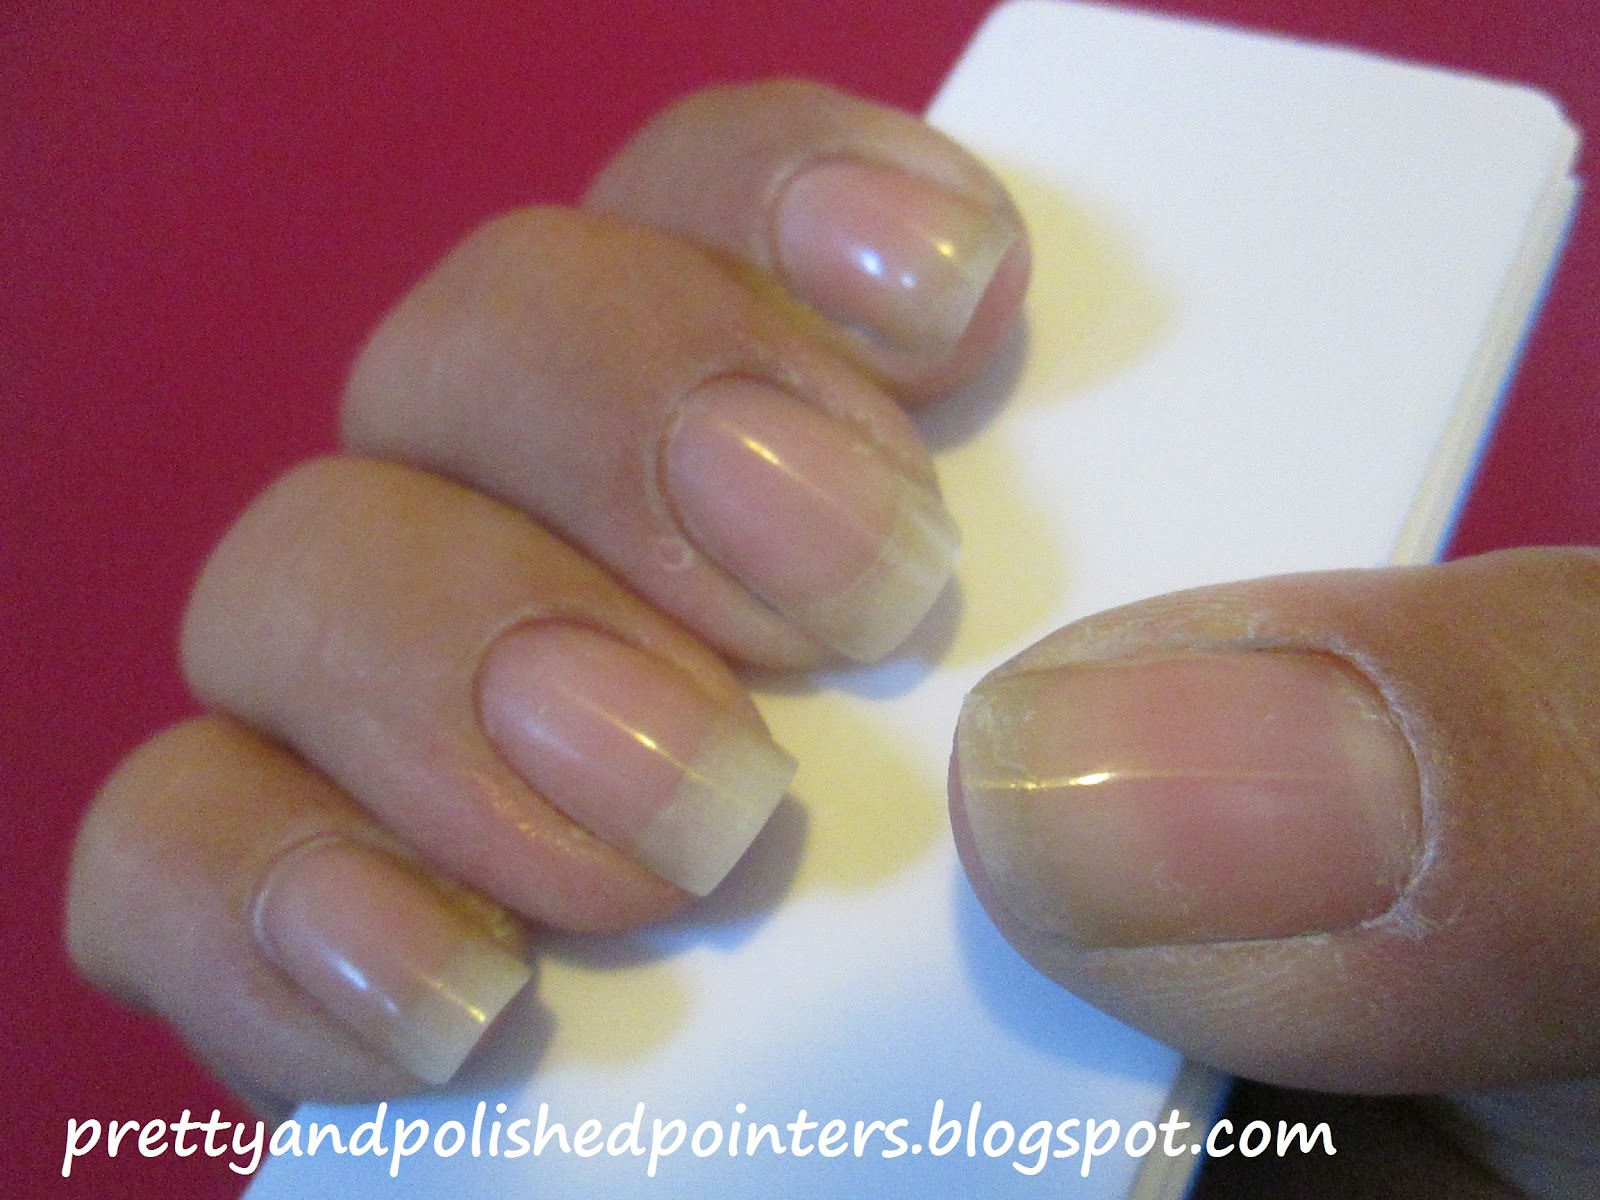 Pretty Polished Pointers: Dead Sea Premier Nail Beautifying Kit ...